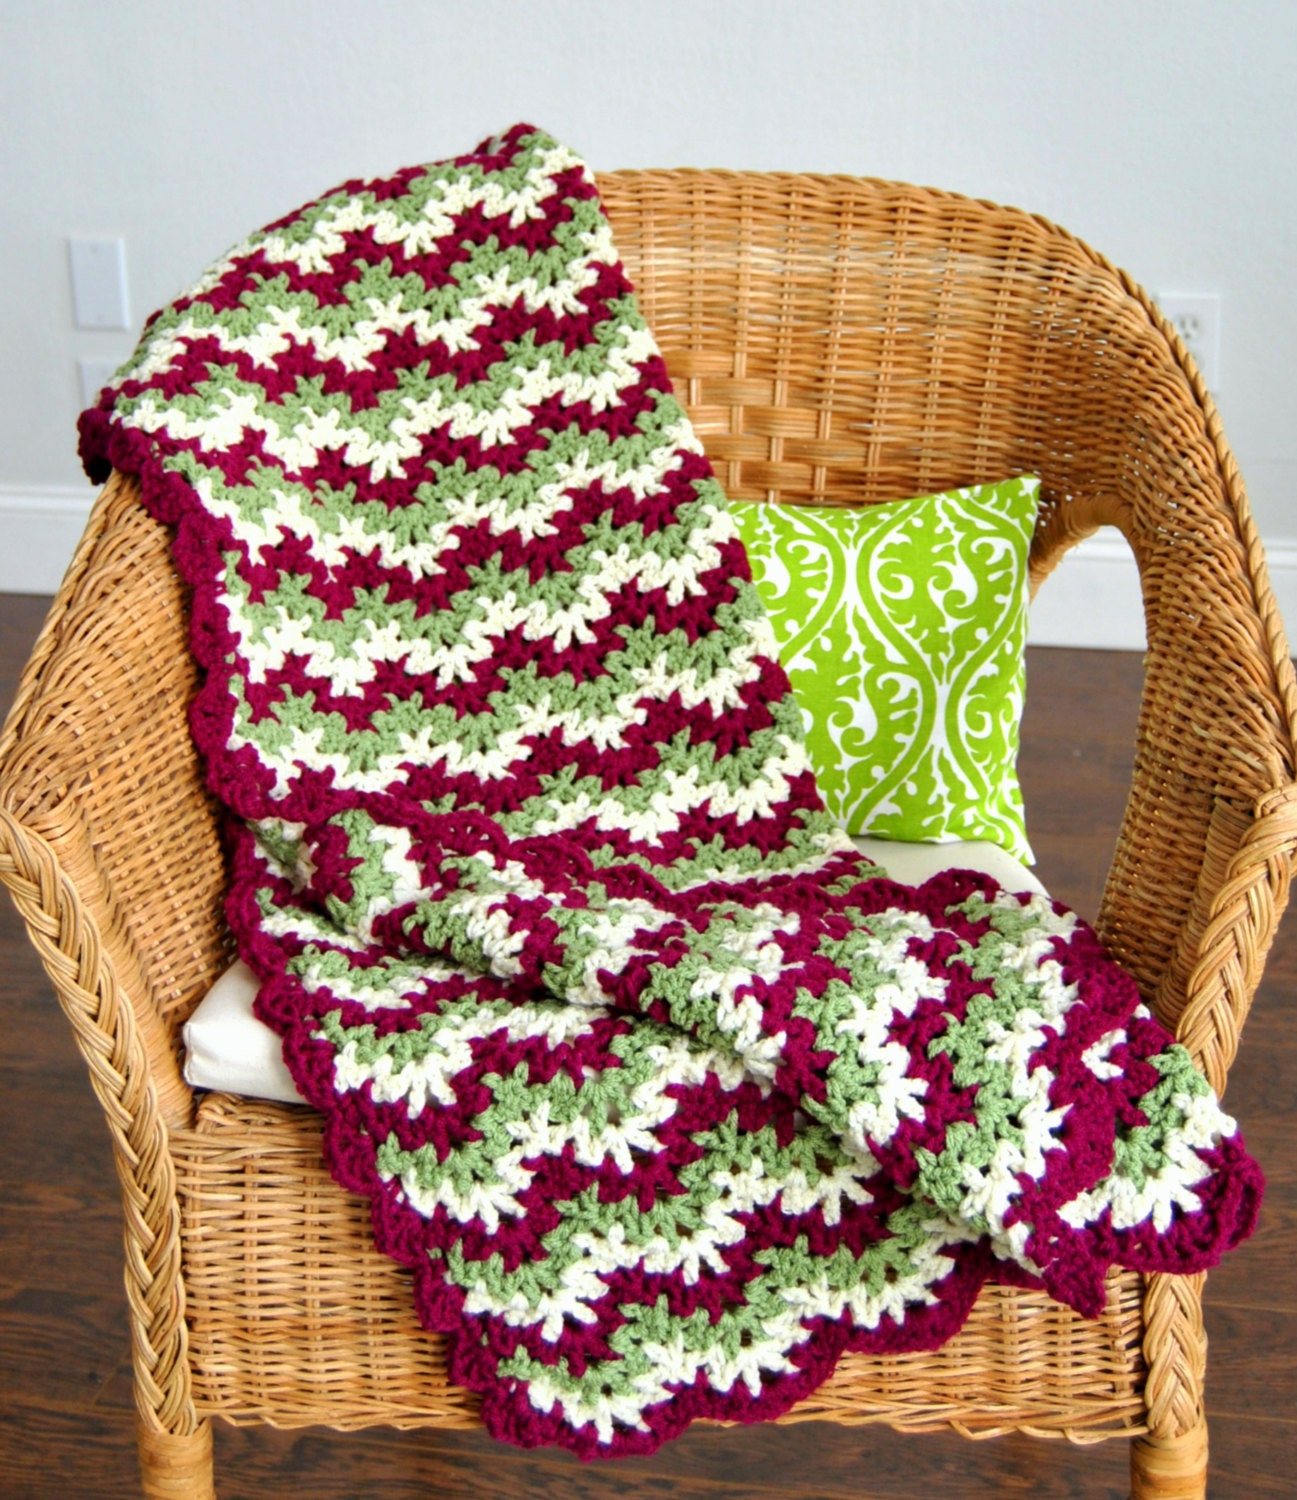 Crochet Zig Zag Baby Blanket : Green Pink and Cream Crochet Zig Zag Baby Blanket by maybematilda